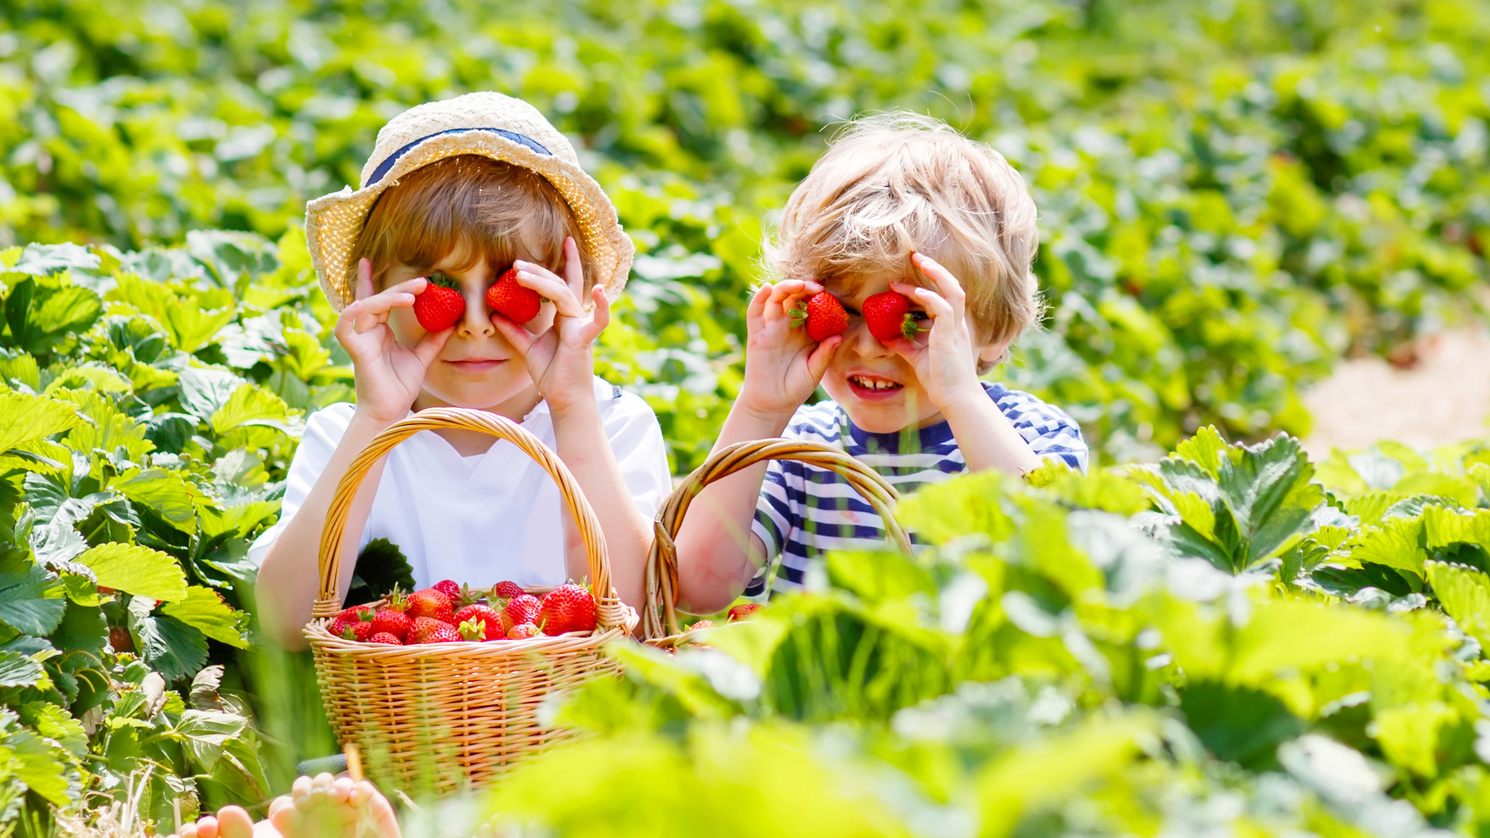 Two young brothers sitting in a strawberry field having fun while picking strawberries.